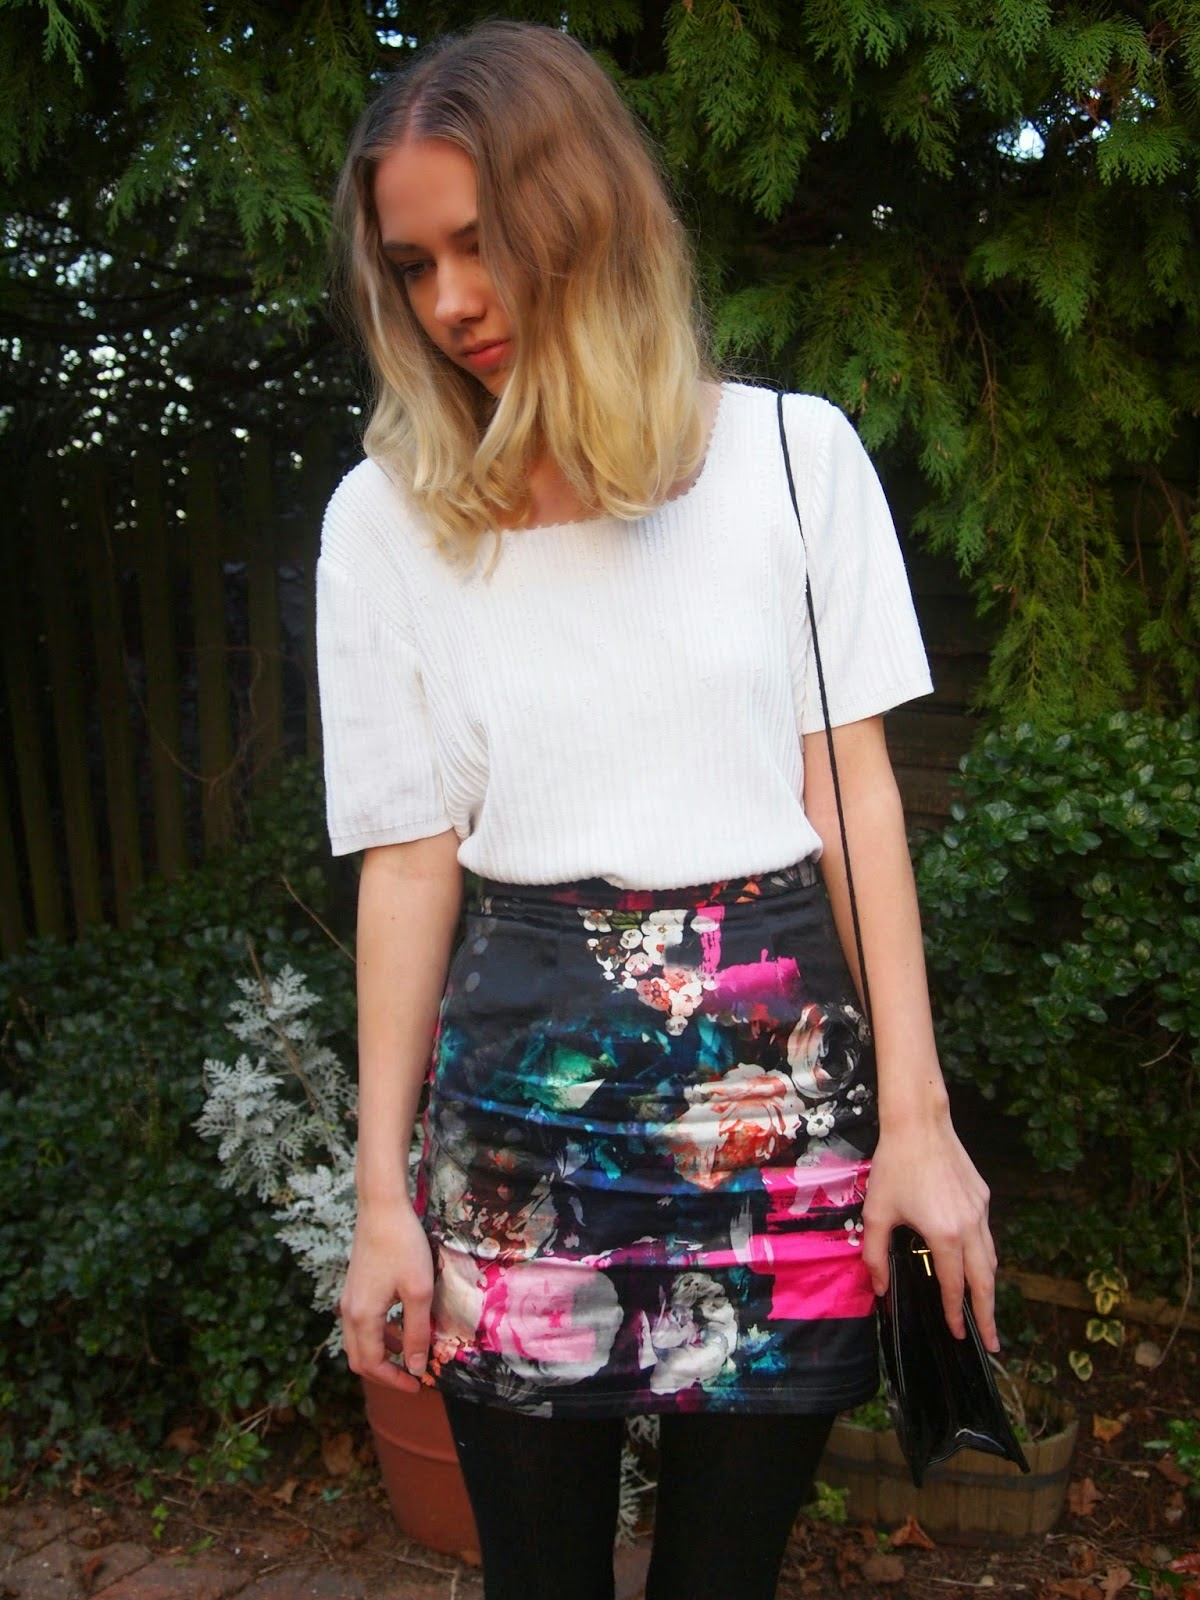 uk fashion blogger charlotte fashion girl134